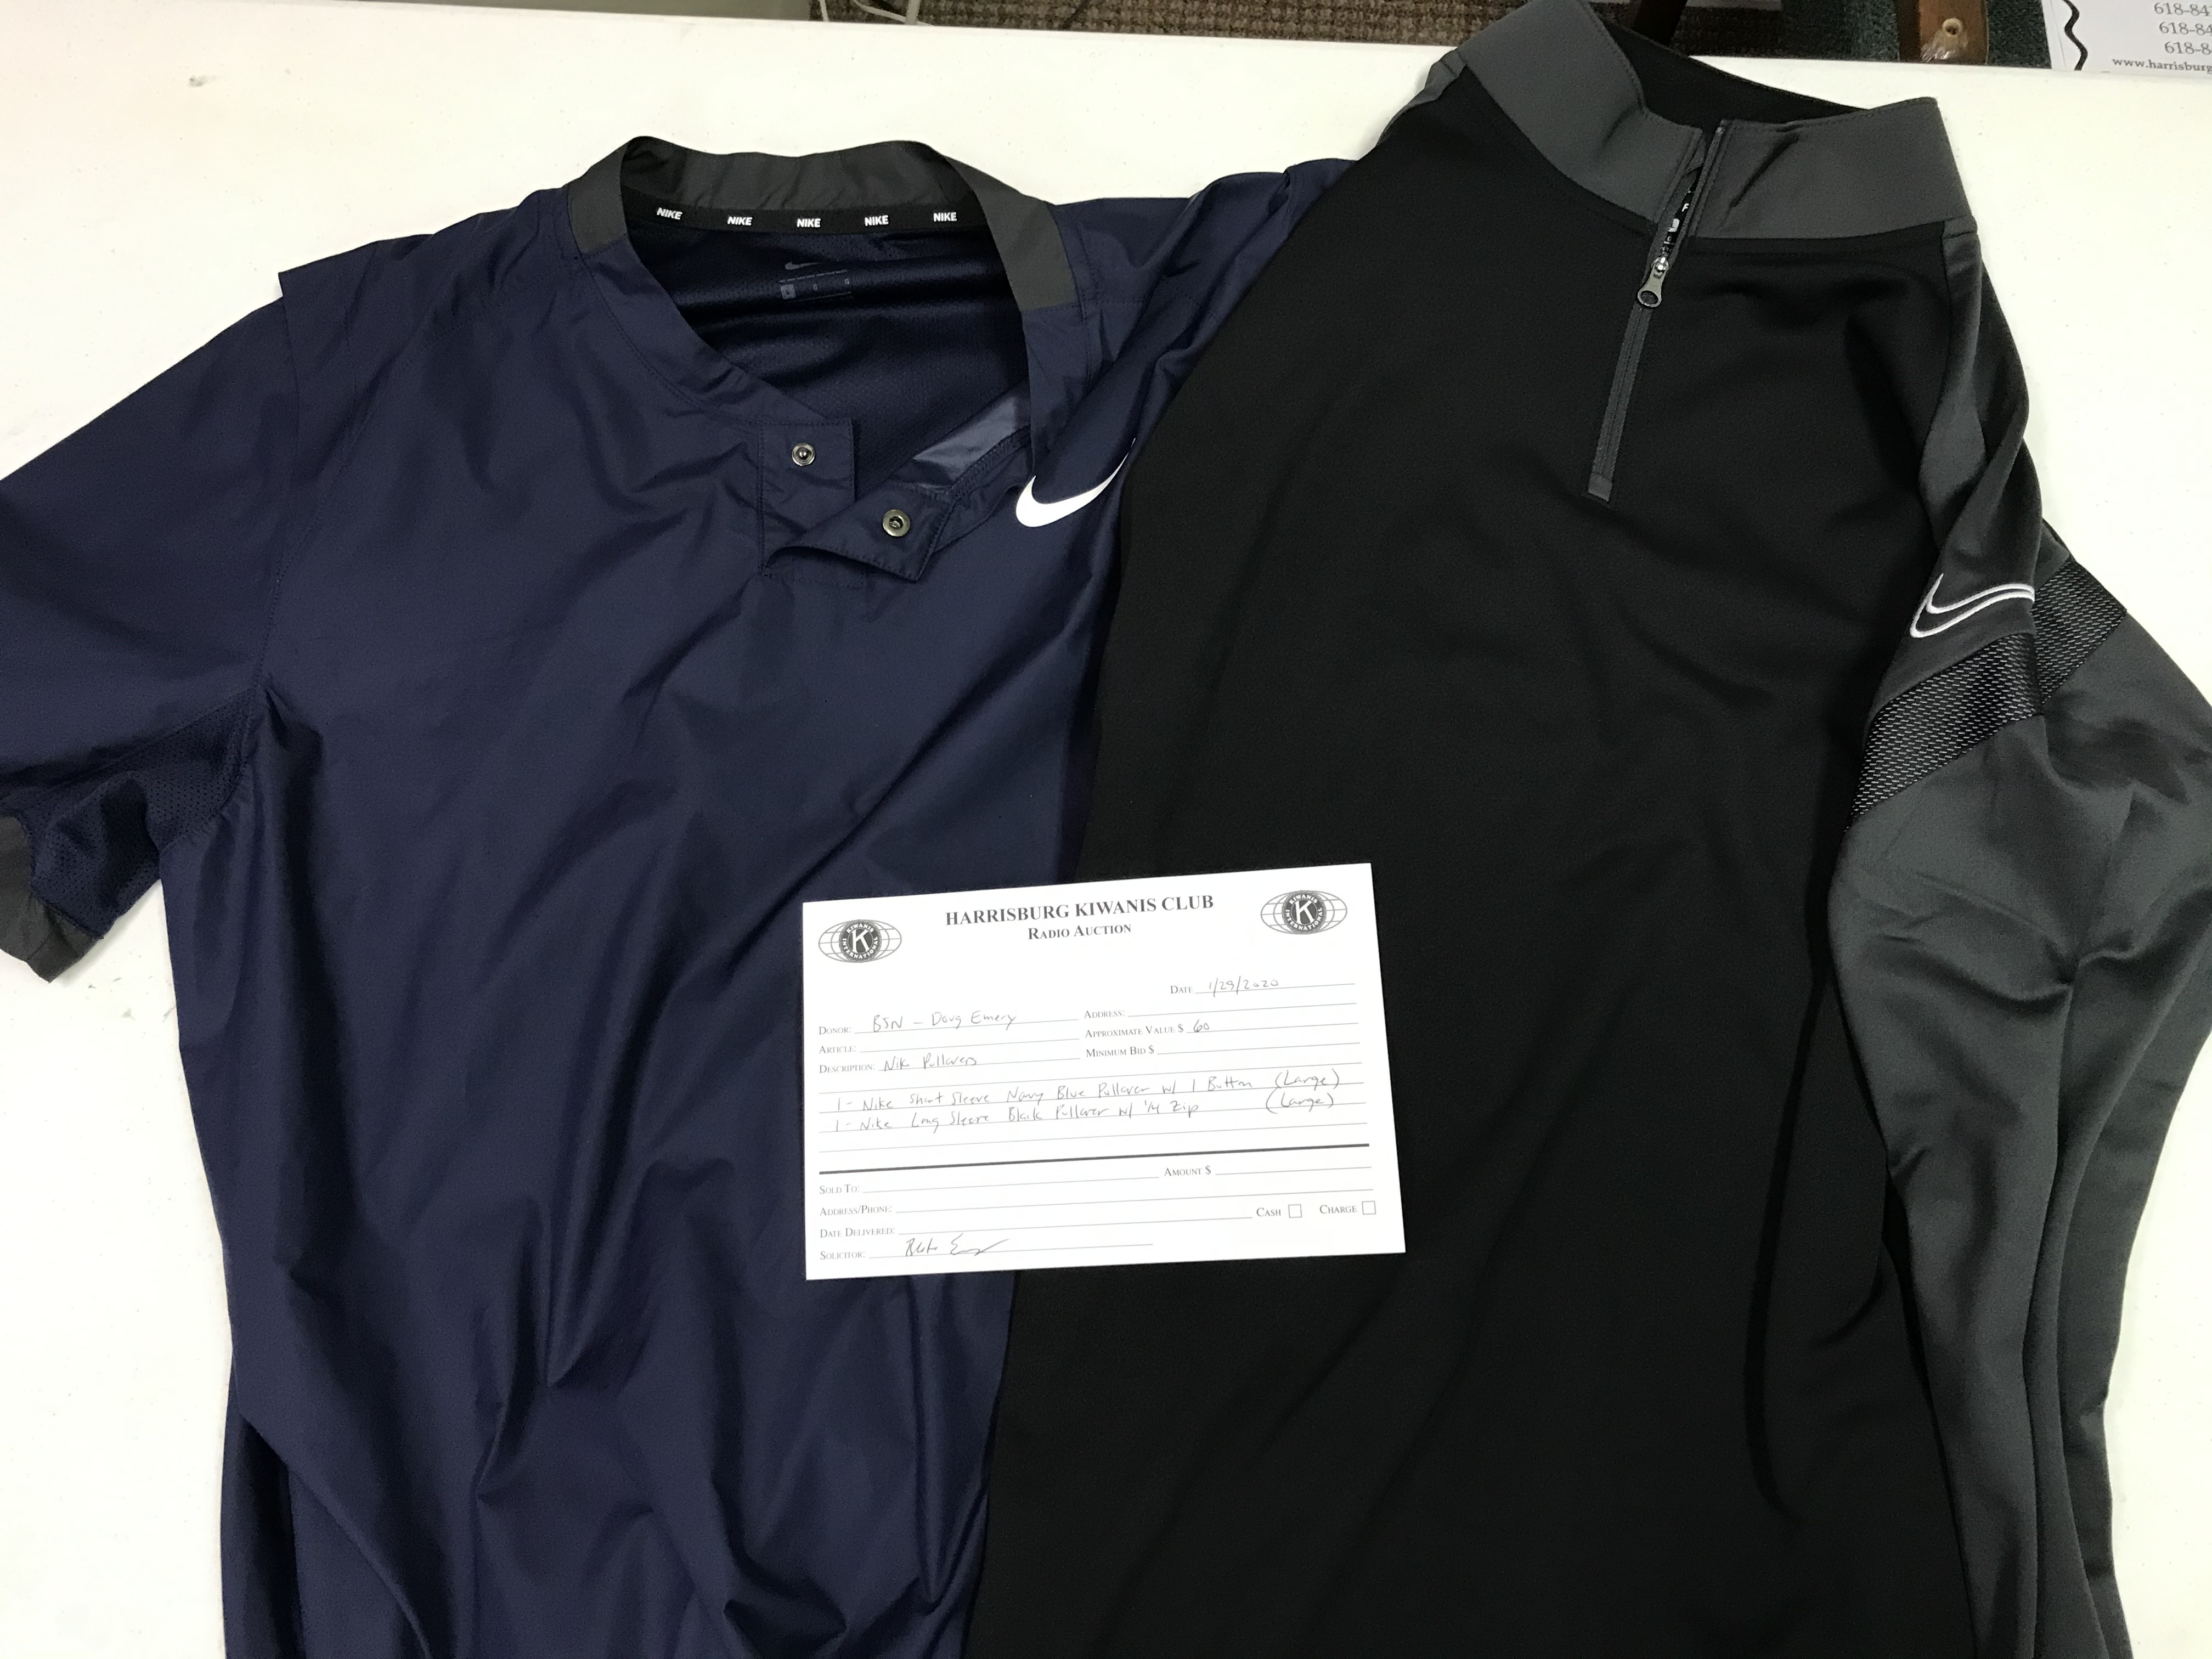 Item 328 - BSN - Doug Emery Nike Pullover Large Navy Blue Short Sleeve 1 Button, Nike Pullover Large Black Long Sleeve with 1/4 Zip